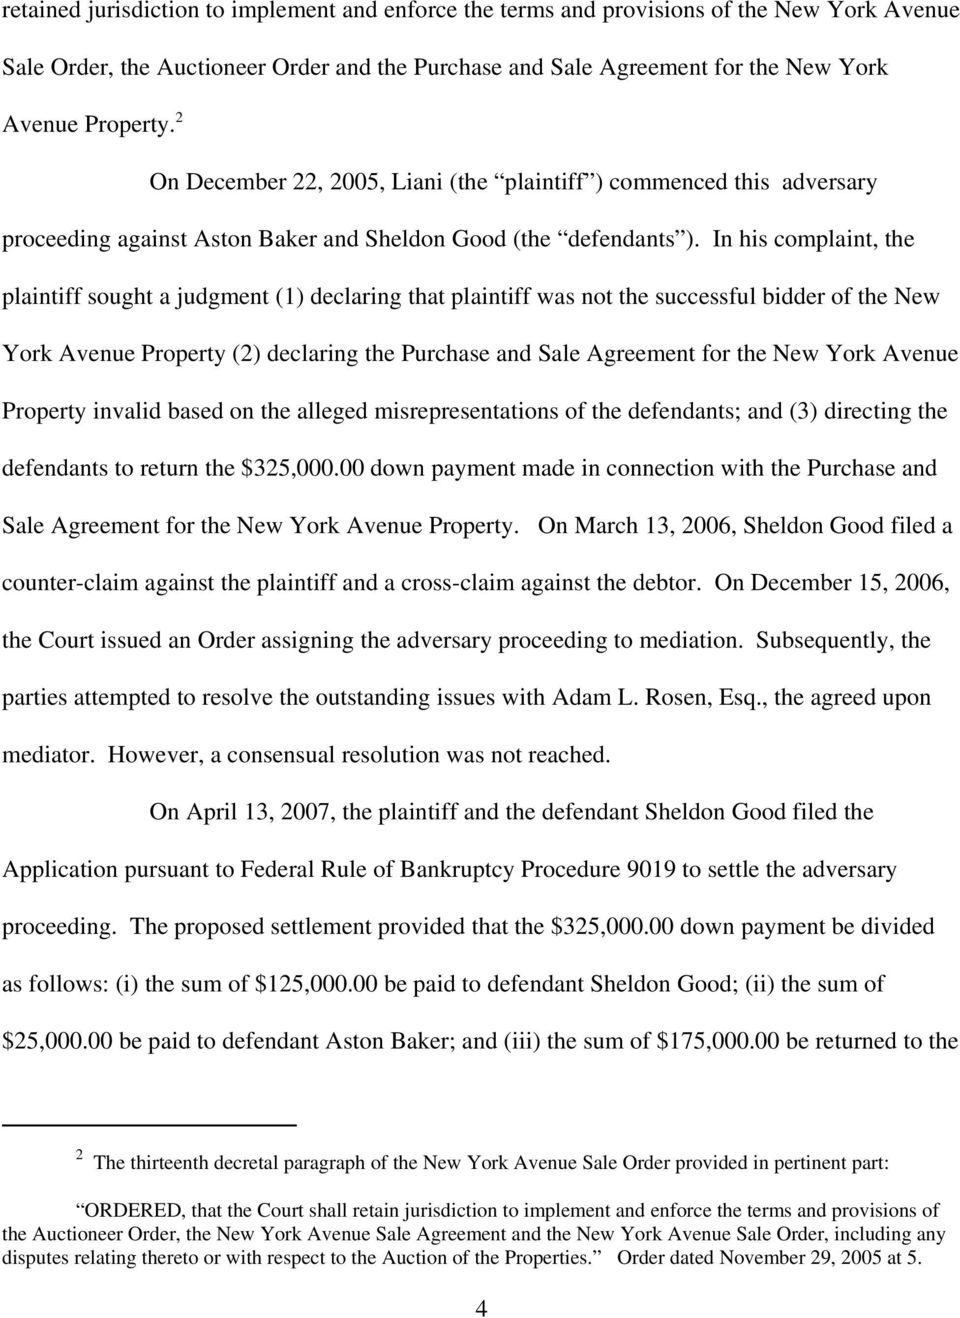 In his complaint, the plaintiff sought a judgment (1) declaring that plaintiff was not the successful bidder of the New York Avenue Property (2) declaring the Purchase and Sale Agreement for the New